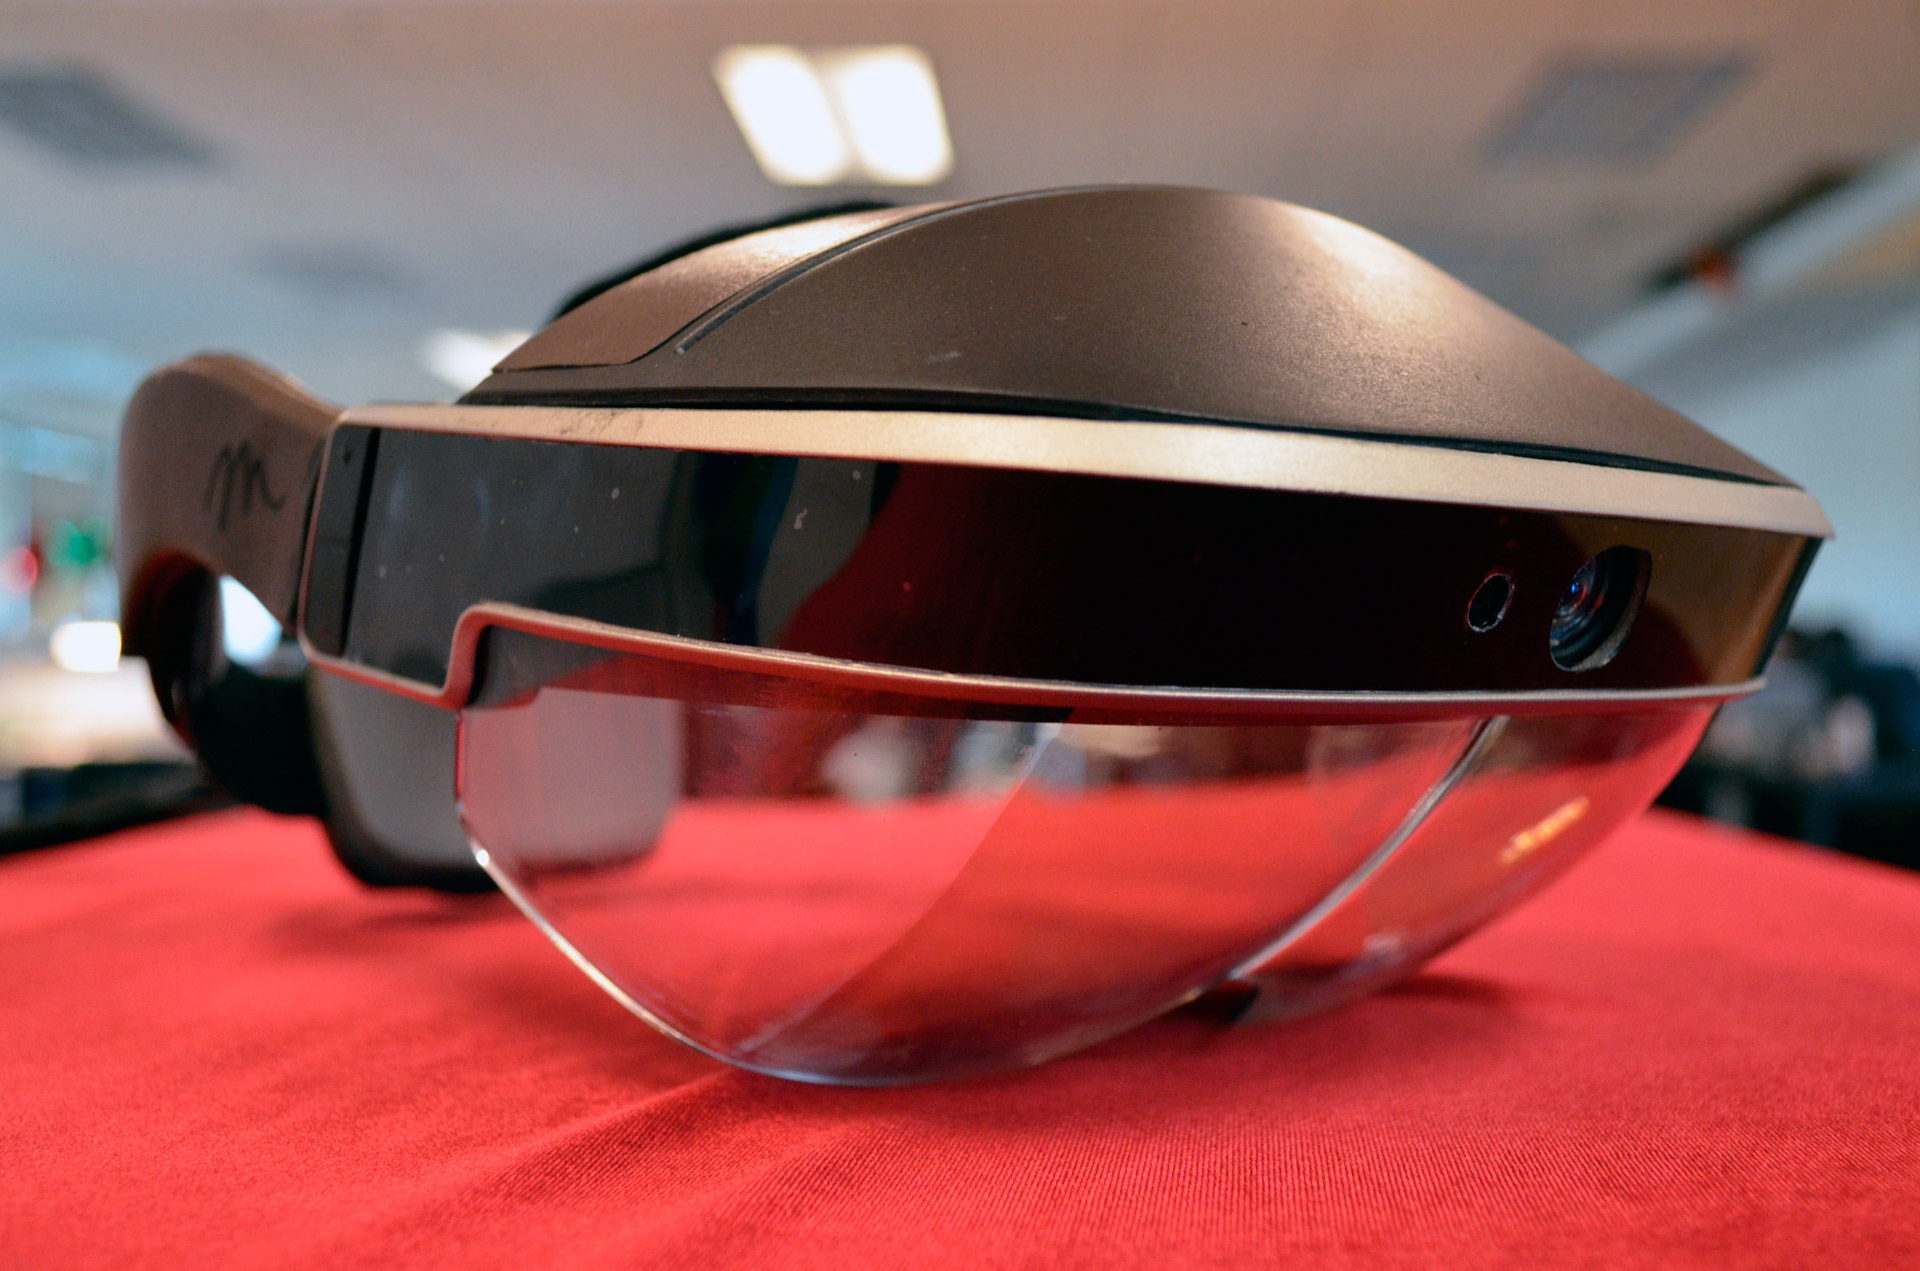 I want to be a virtual reality developer. From where can I ...